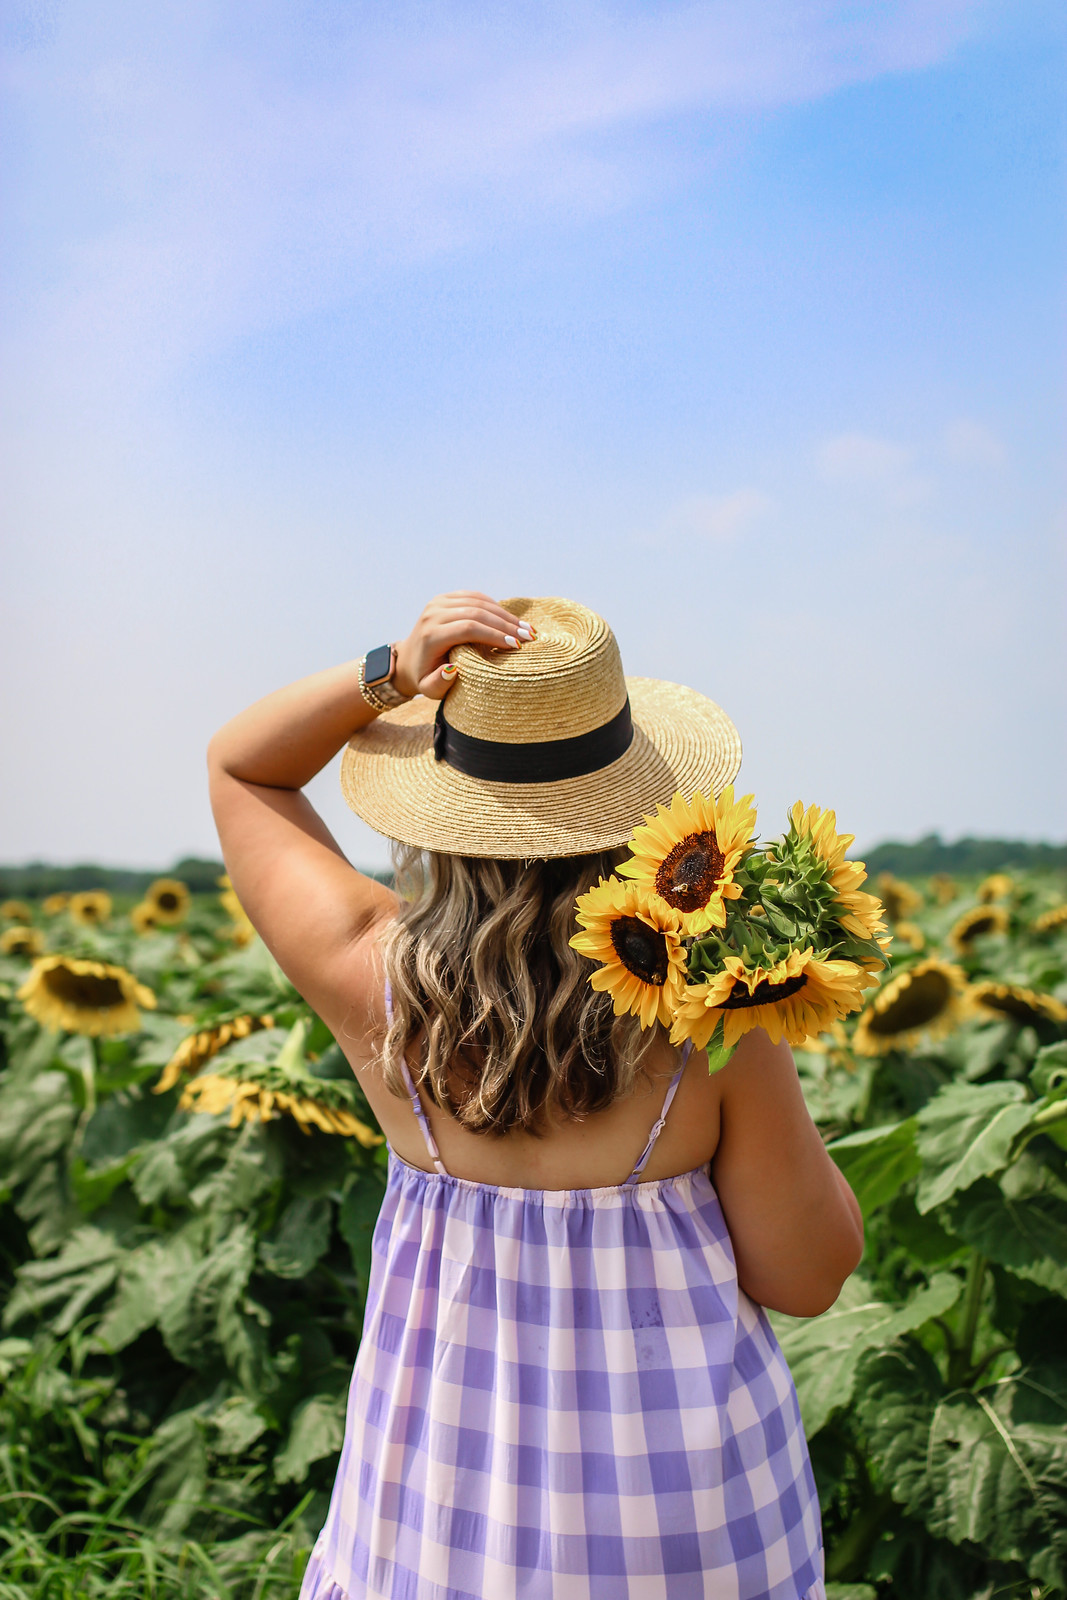 North Fork Sunflower Maze   Sunflower Photo Shoot   48 Hours on the North Fork, Long Island   The Perfect Weekend Itinerary   Best Things to Do on The North Fork   Explore Long Island New York   Weekend in North Fork, LI   North Fork, Long Island Travel Guide   Things to Do & Where to Stay   Weekend Trip Out East   2 Days in the North Fork   Top Things to do in Long Island